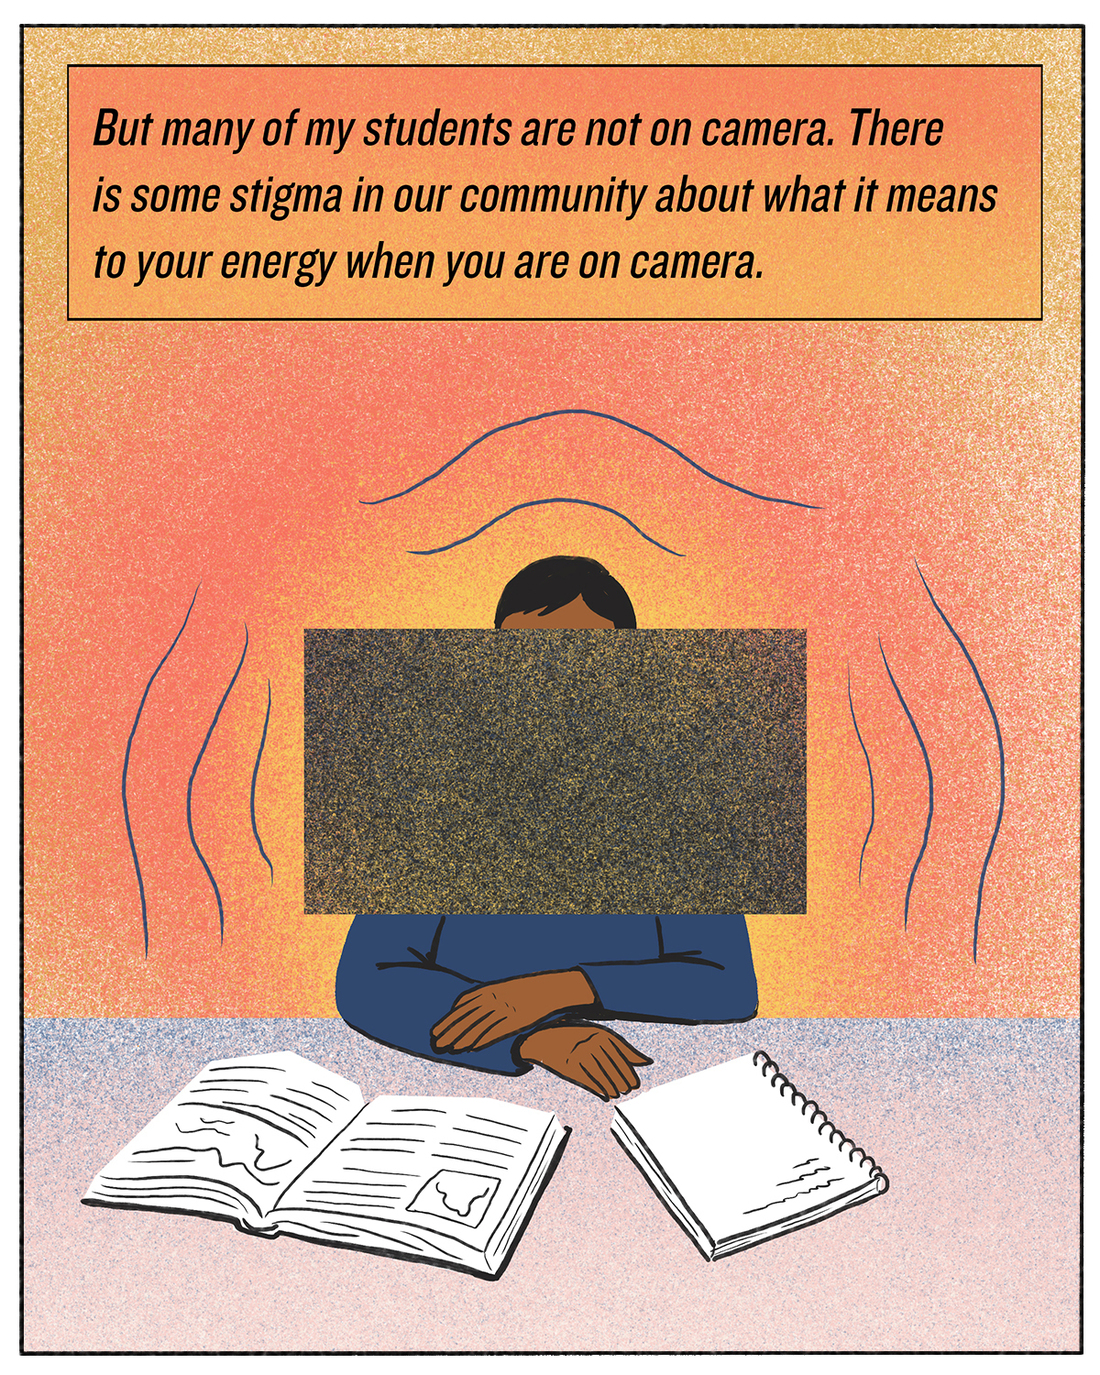 But many of my students are not on camera. There is some stigma in our community about what it means to your energy when you are on camera.